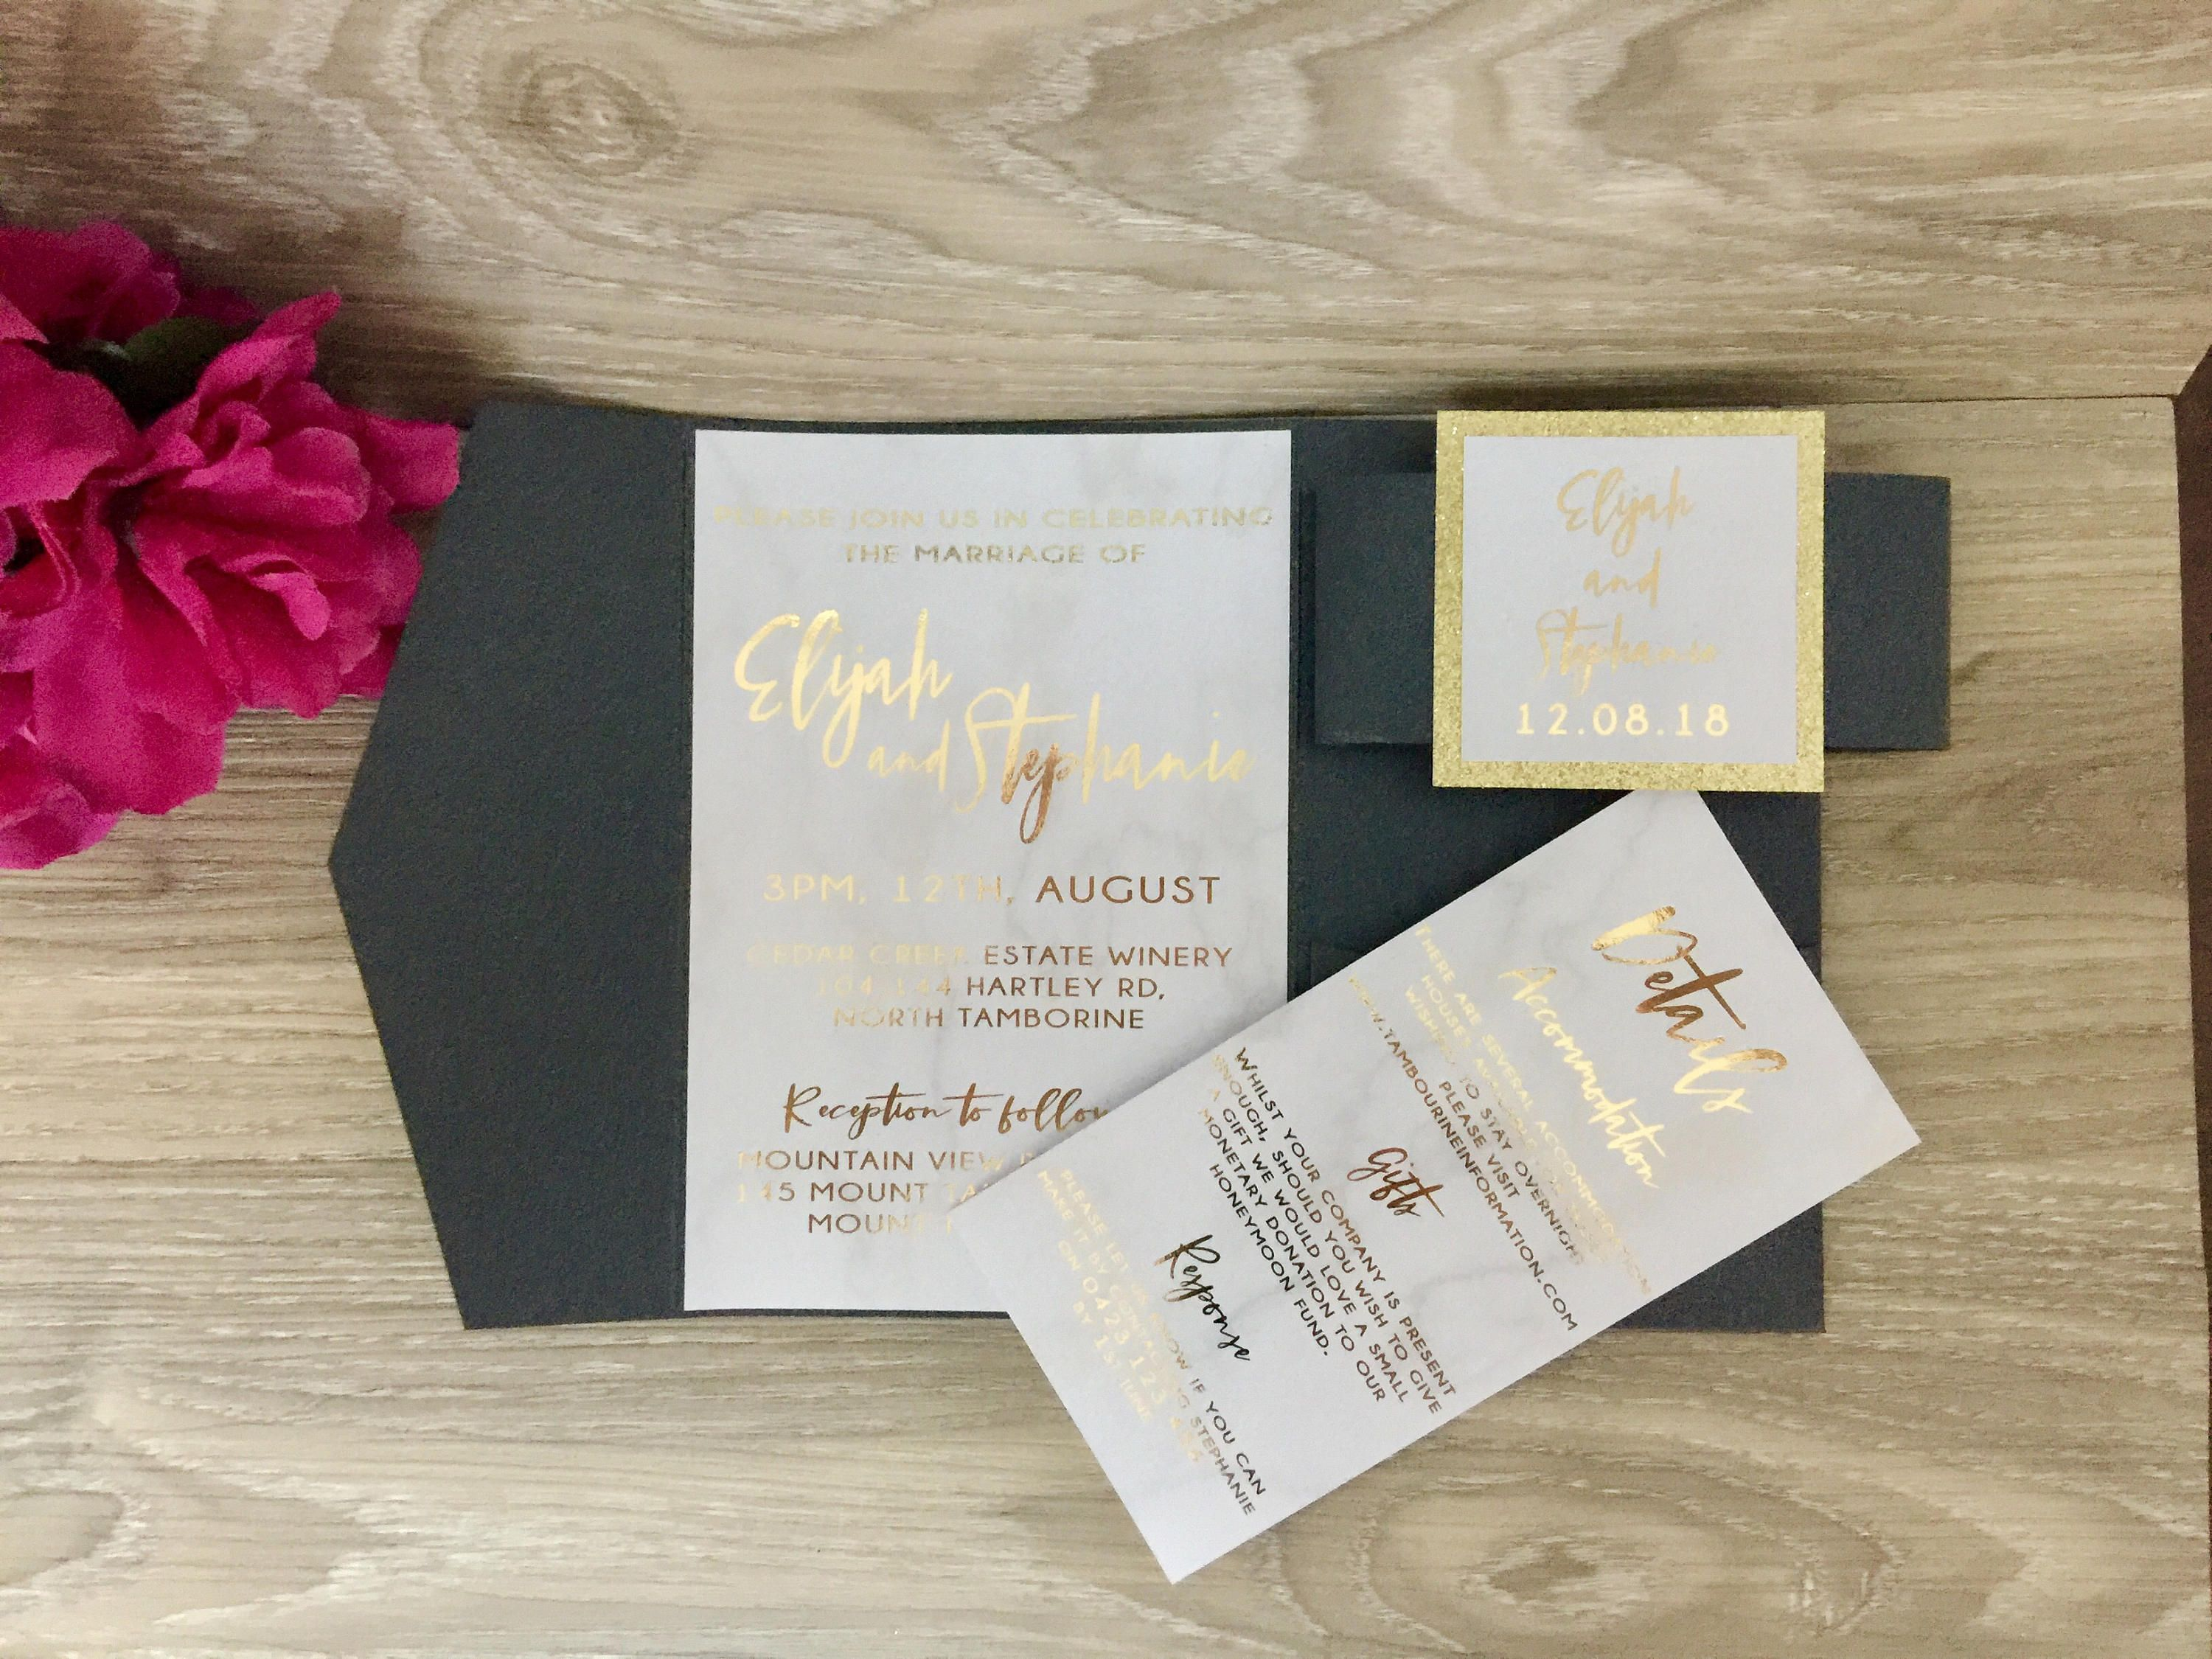 Marble and gold invitation gold foil wedding invitation sample marble and gold invitation gold foil wedding invitation sample pocket fold invitation invitation stopboris Images